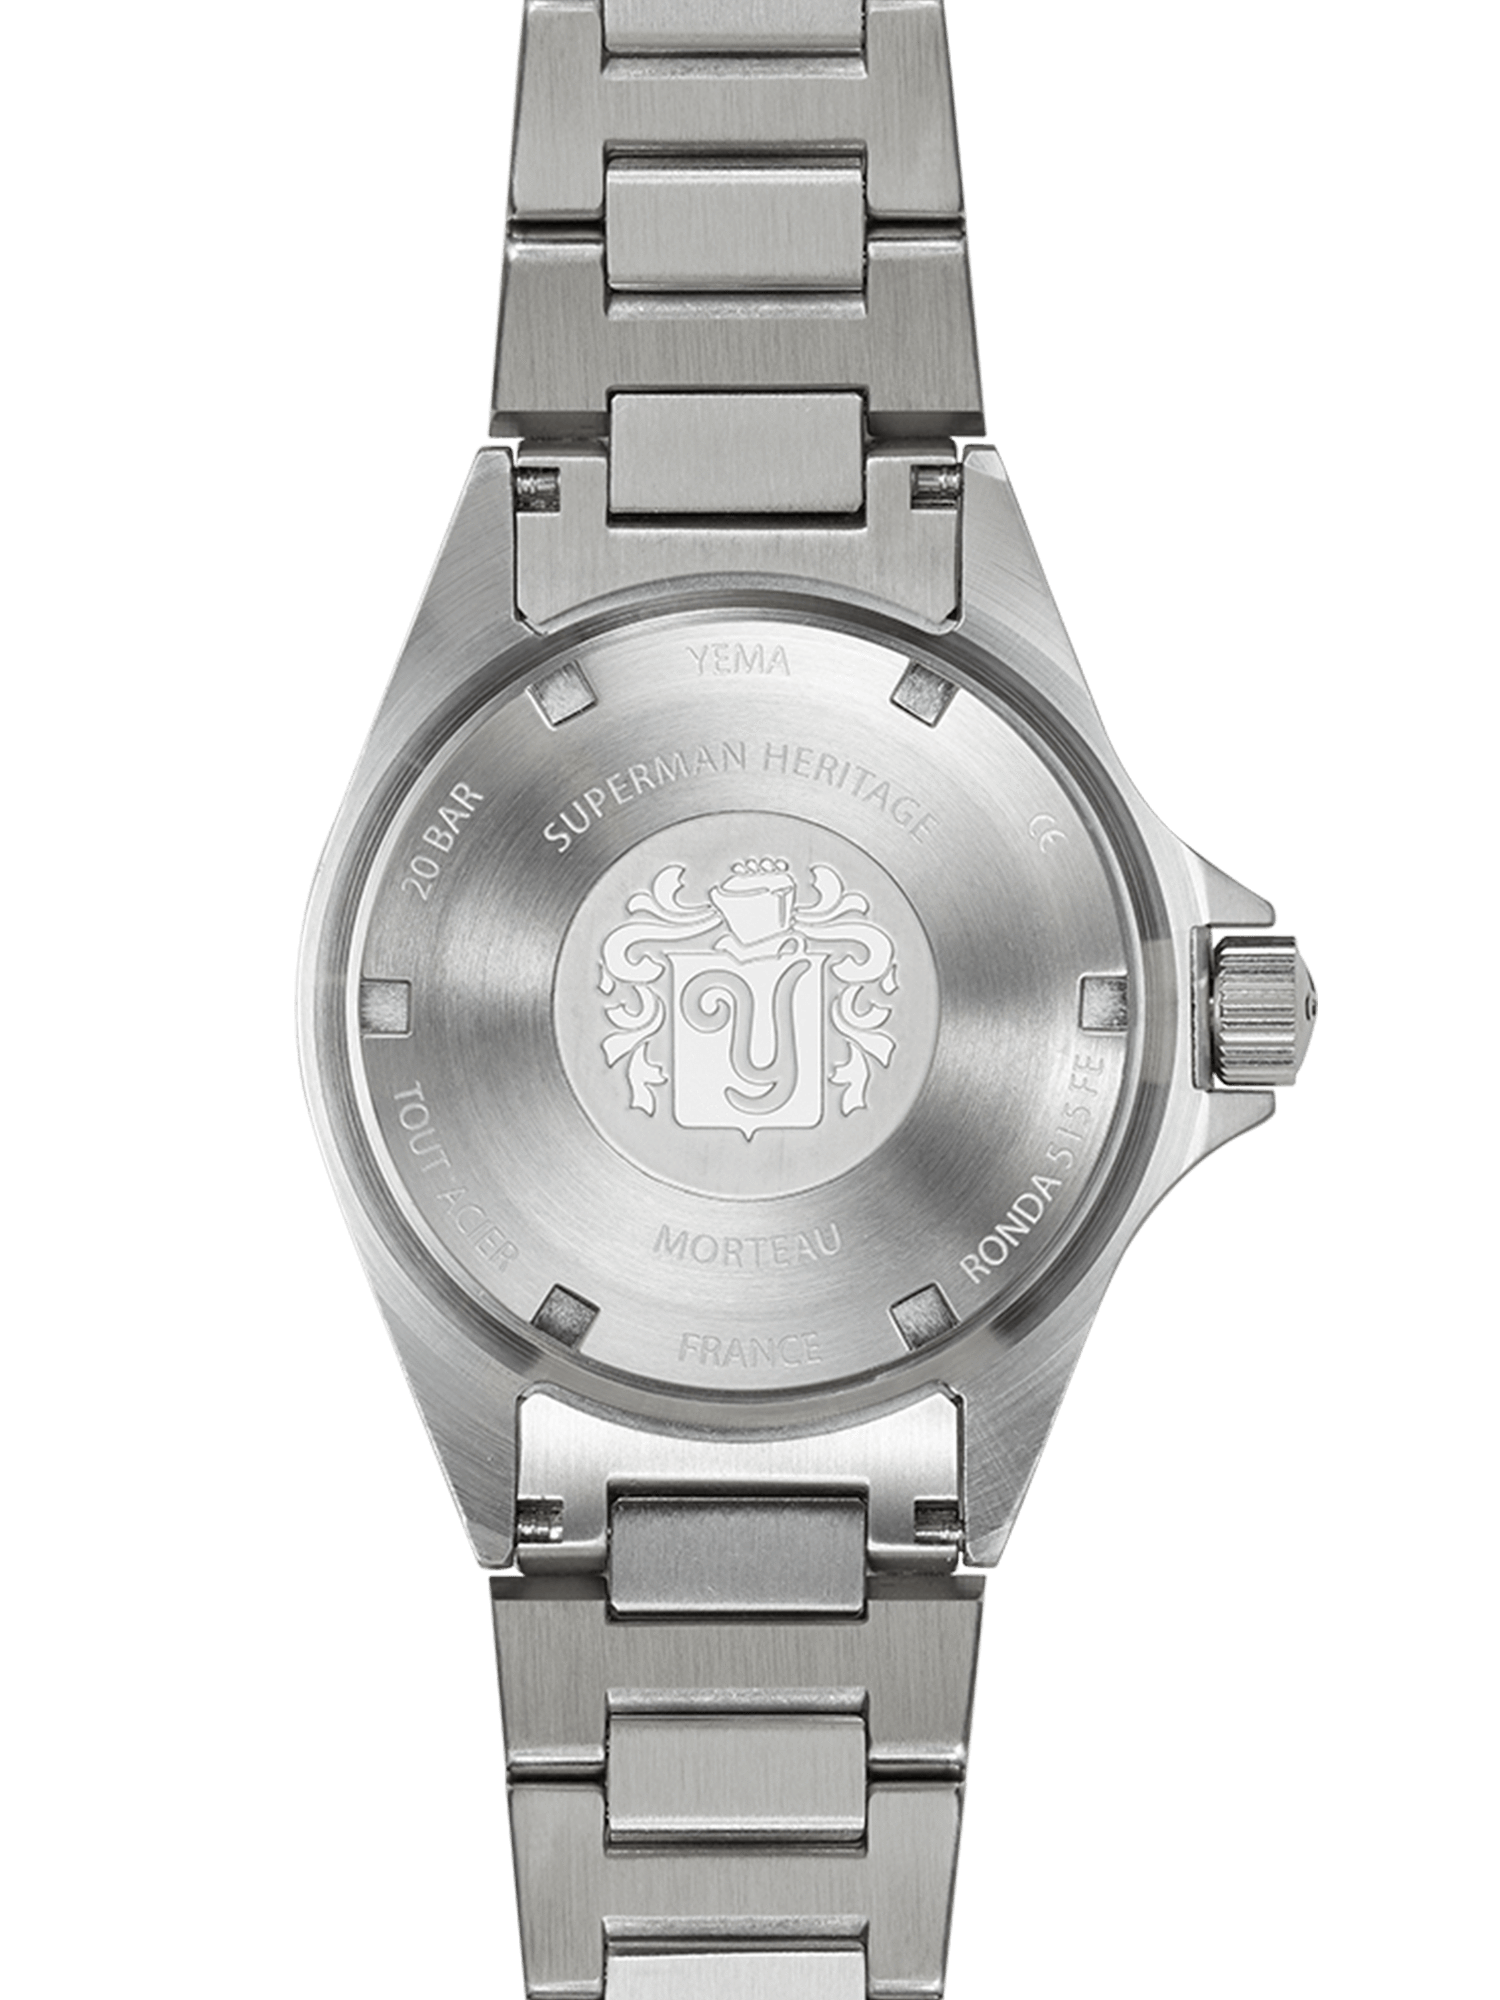 YEMA Superman Heritage Dark blue, steel caseback, YEMA logo engraved at the center.